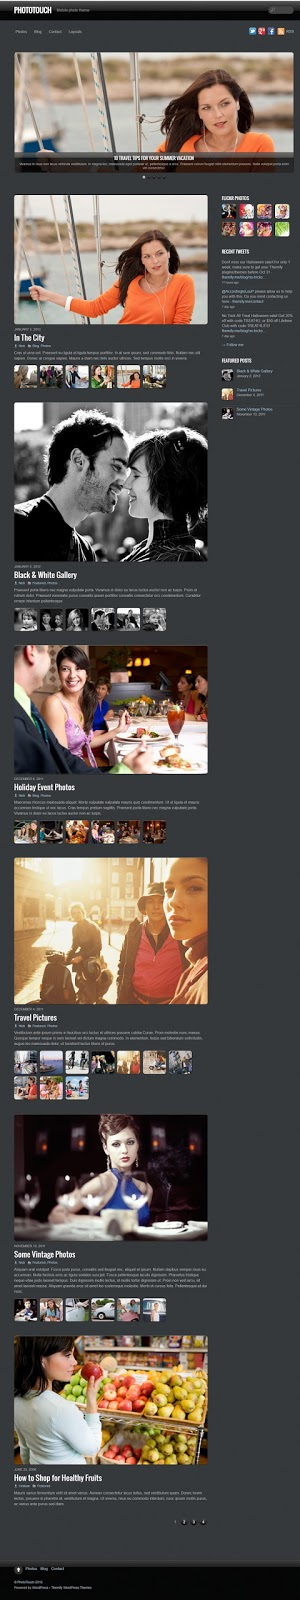 PhotoTouch- Mobile Friendly Wordpress Theme For Photography